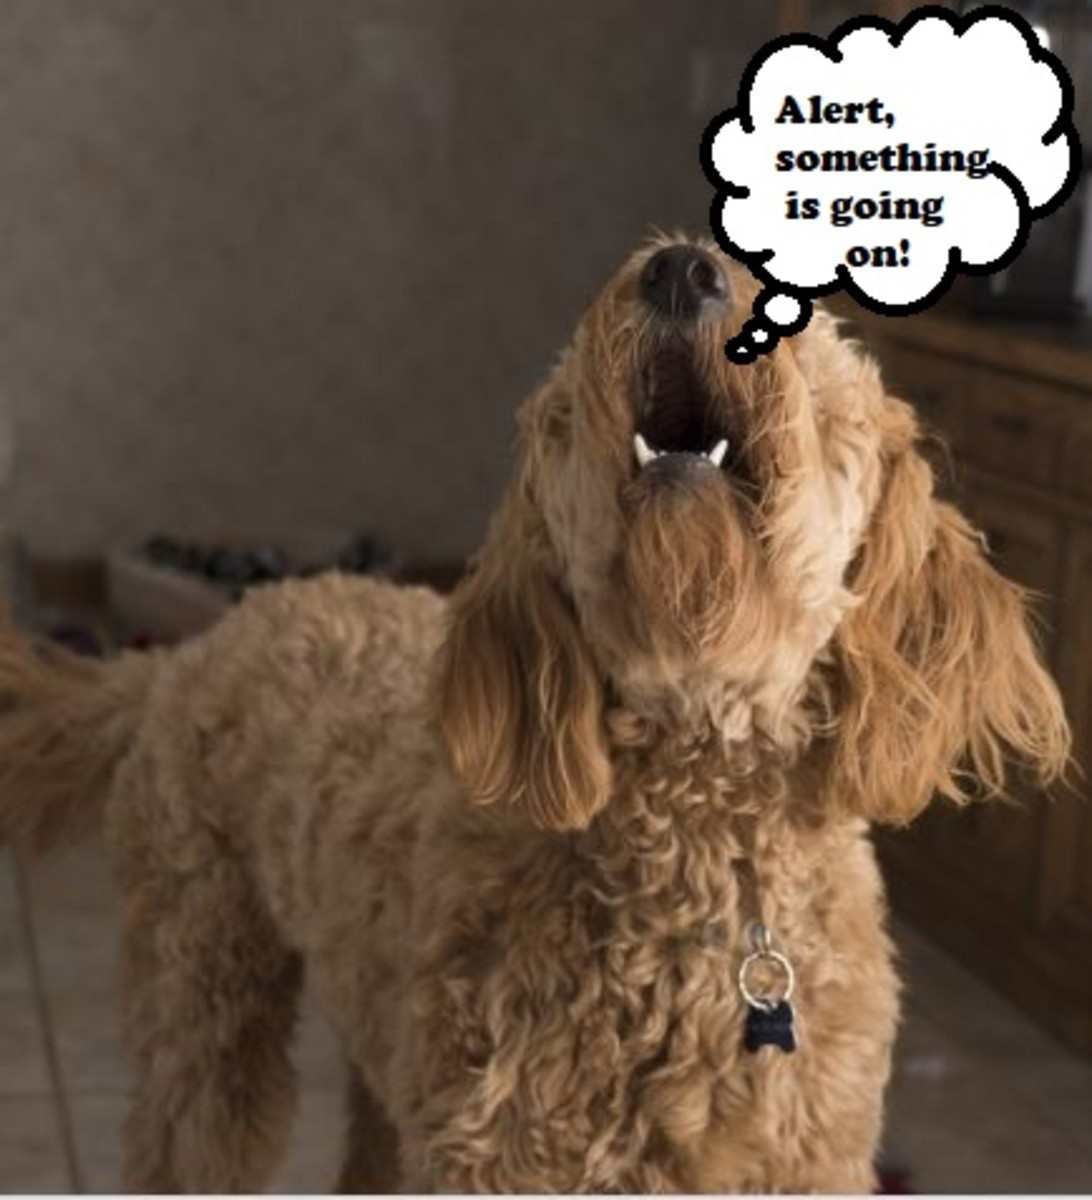 Alarm barks are typically warranted and alert the owner to unusual and concerning circumstances.